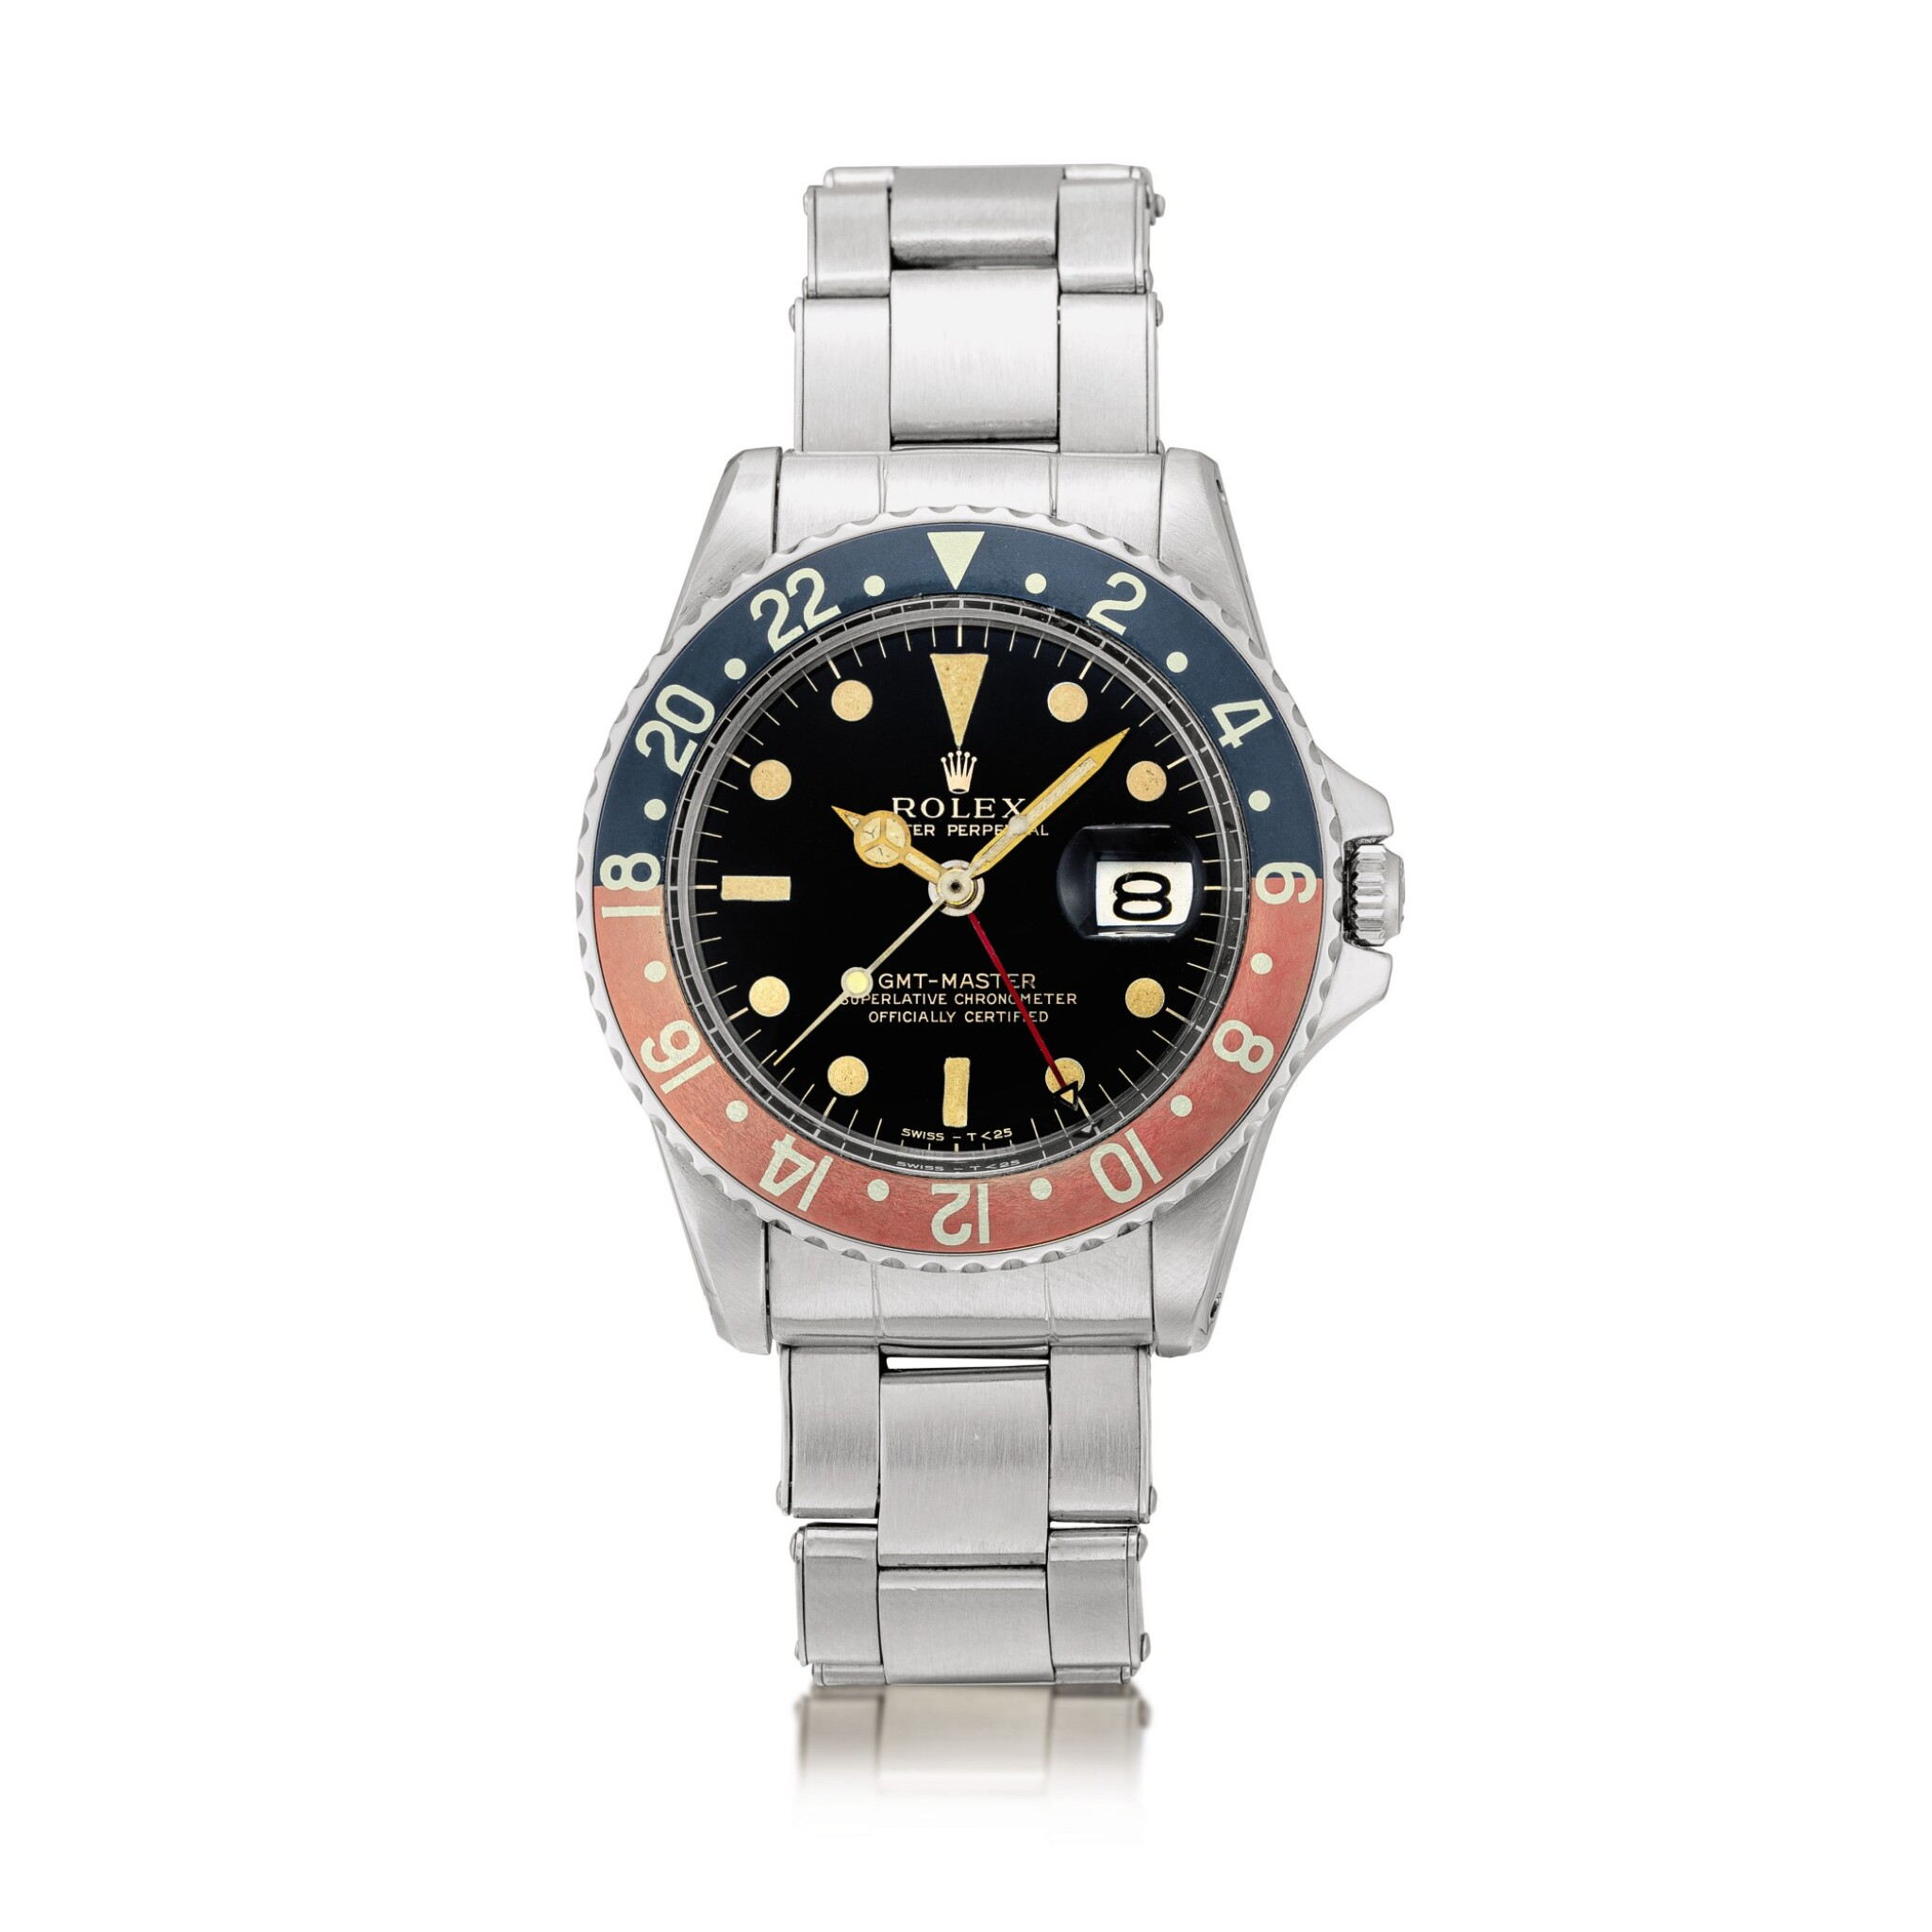 View full screen - View 1 of Lot 2130. Rolex | GMT-Master, Reference 1675, A stainless steel dual time zone wristwatch with gilt dial, pointed crown guards, date and bracelet, Circa 1965 | 勞力士 | GMT-Master 型號1675    精鋼兩地時間鏈帶腕錶,備漆製錶盤、尖形錶冠護橋及日期顯示,約1965年製.